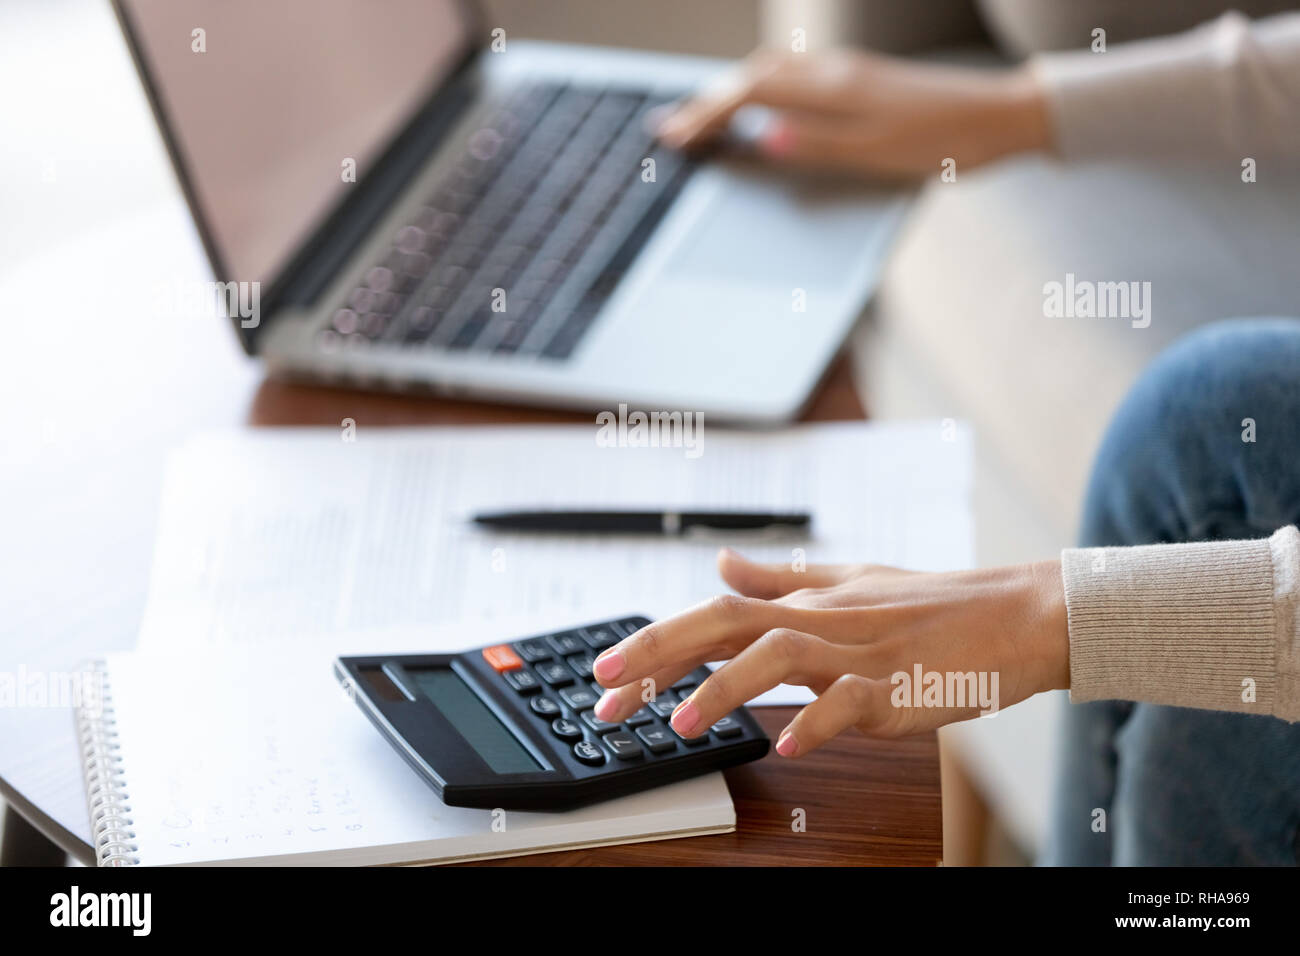 Businesswoman using calculator and laptop for budget cost management, closeup - Stock Image